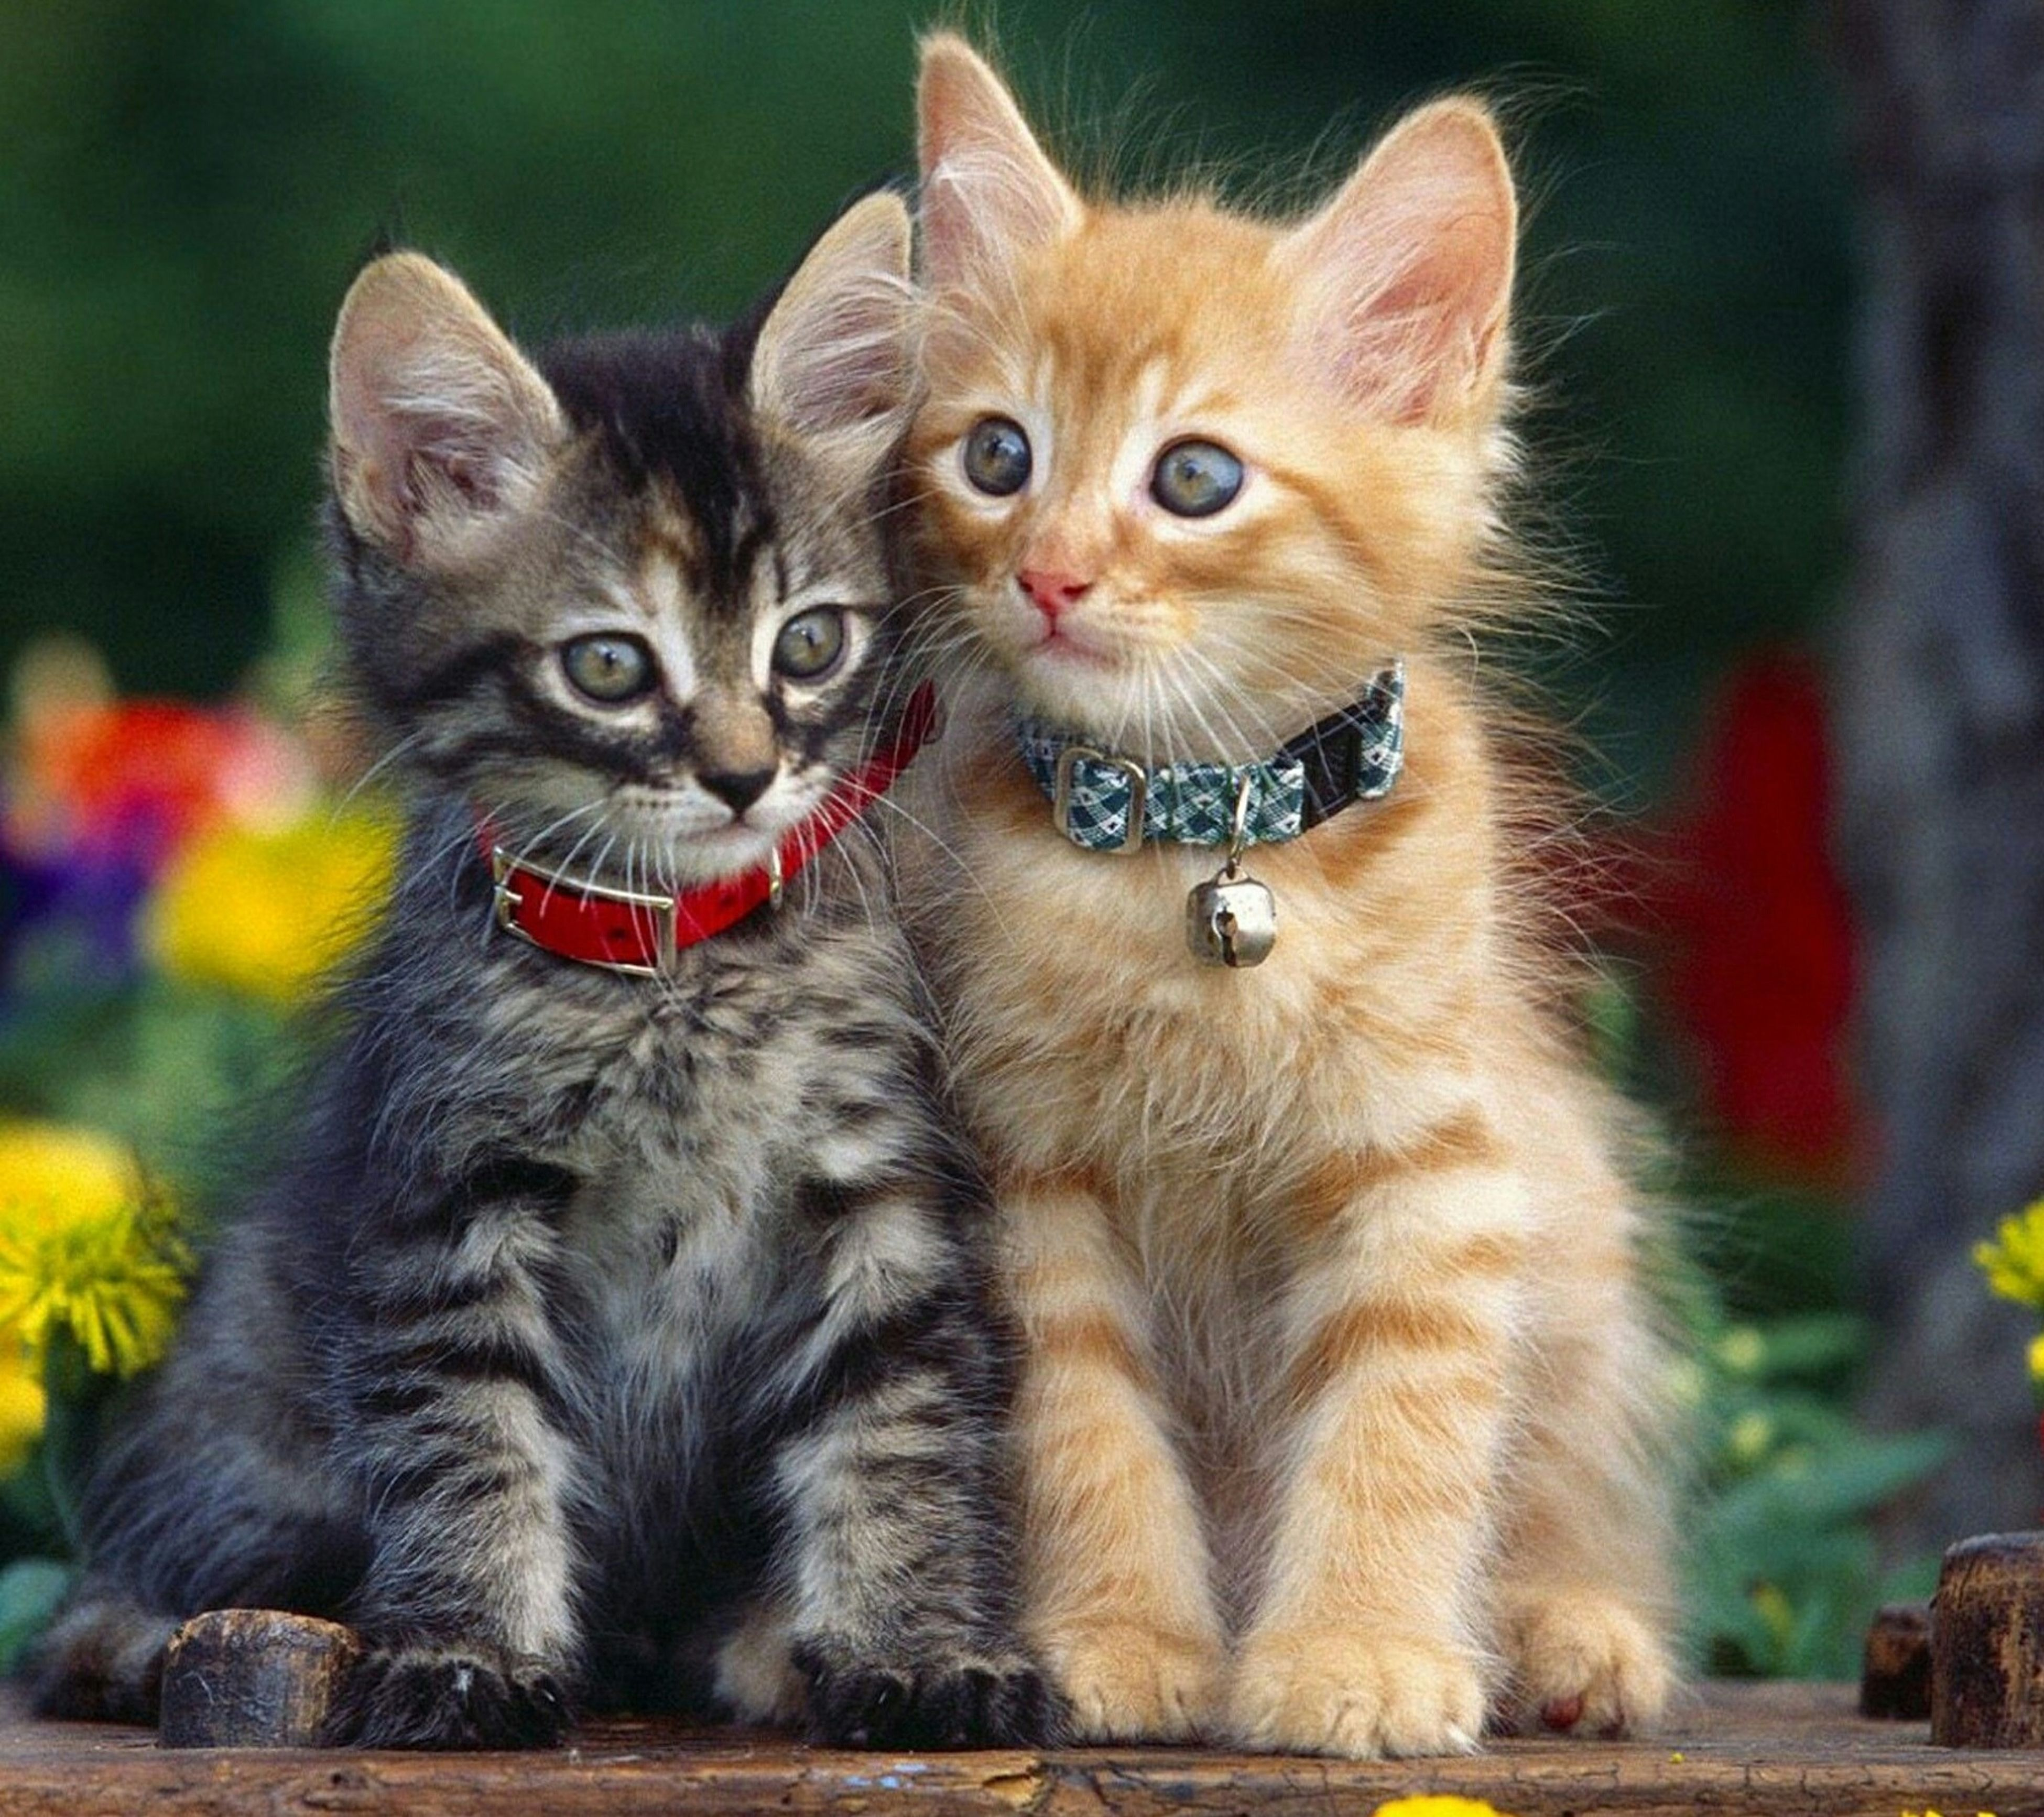 animal themes, mammal, one animal, domestic animals, pets, two animals, looking at camera, portrait, focus on foreground, domestic cat, sitting, togetherness, young animal, whisker, feline, three animals, animals in the wild, animal family, outdoors, cat